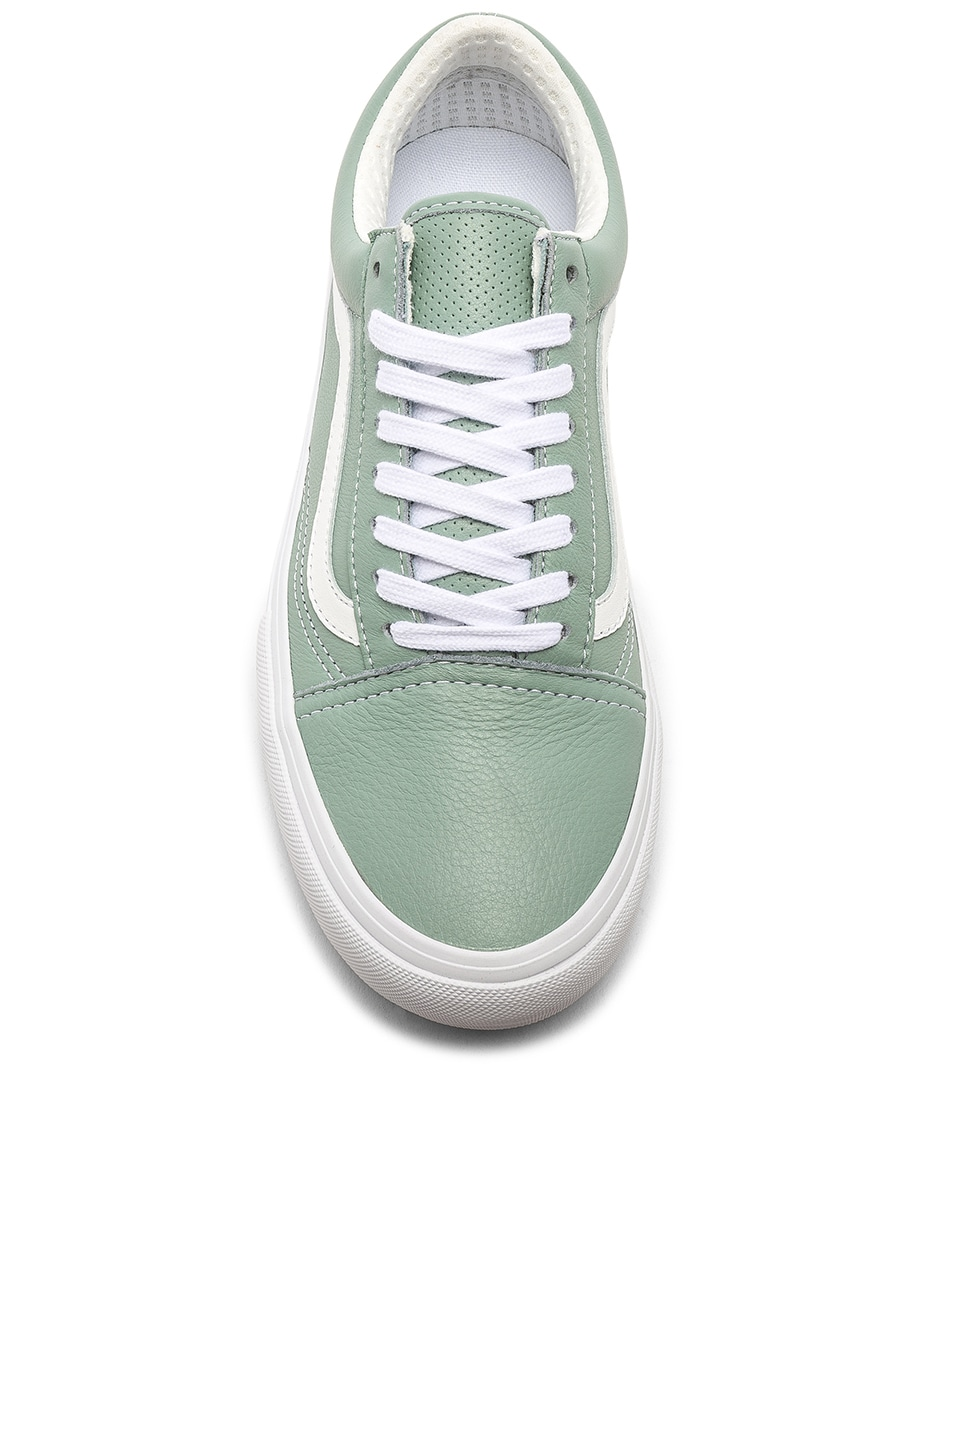 Image 4 of Vans Vault Italian Leather Old Skool VLT LX in Cielo e845d239b